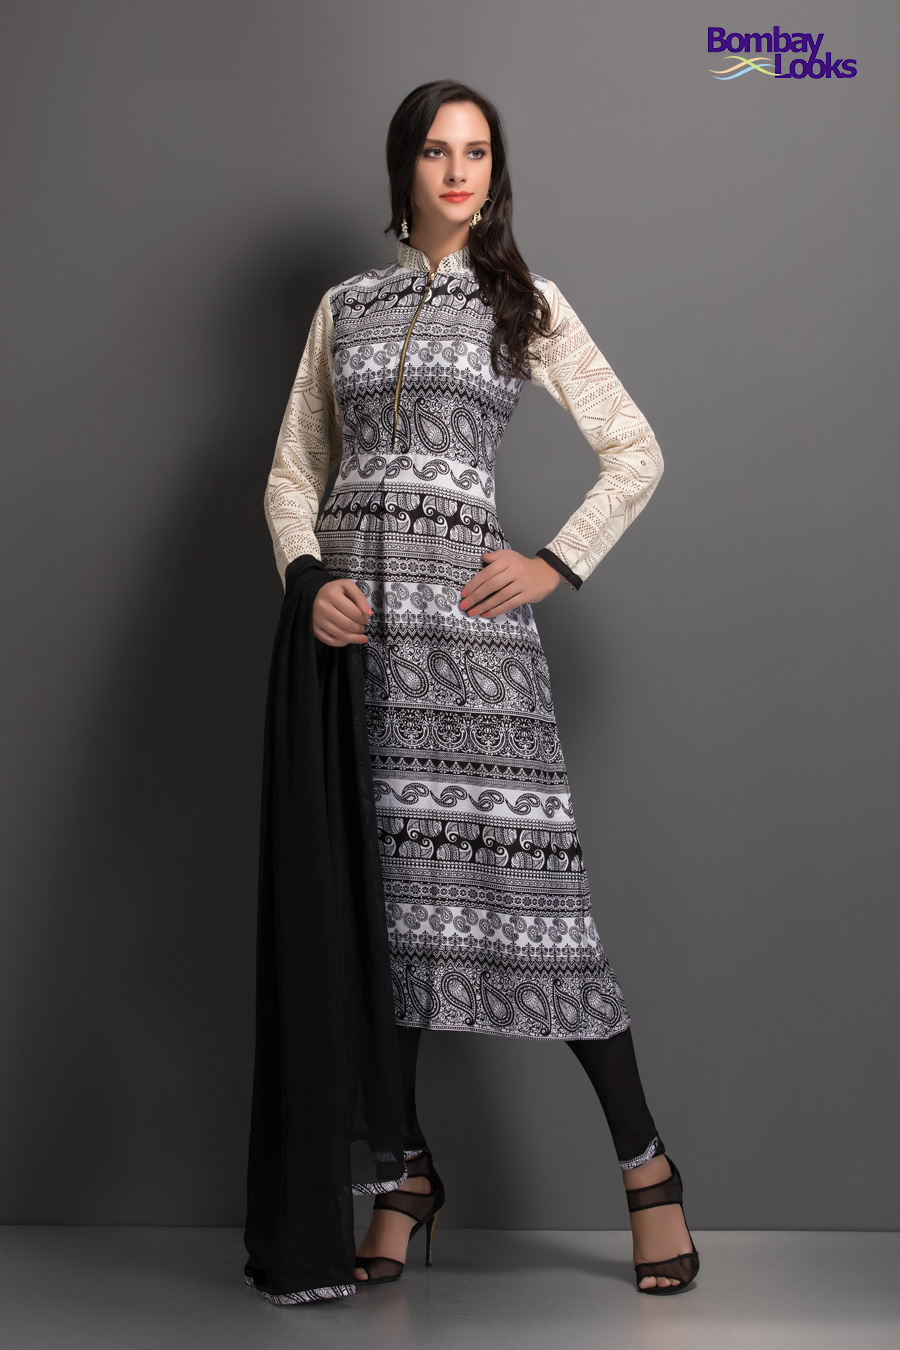 Grey and white geometric printed suit with lacey sleeves